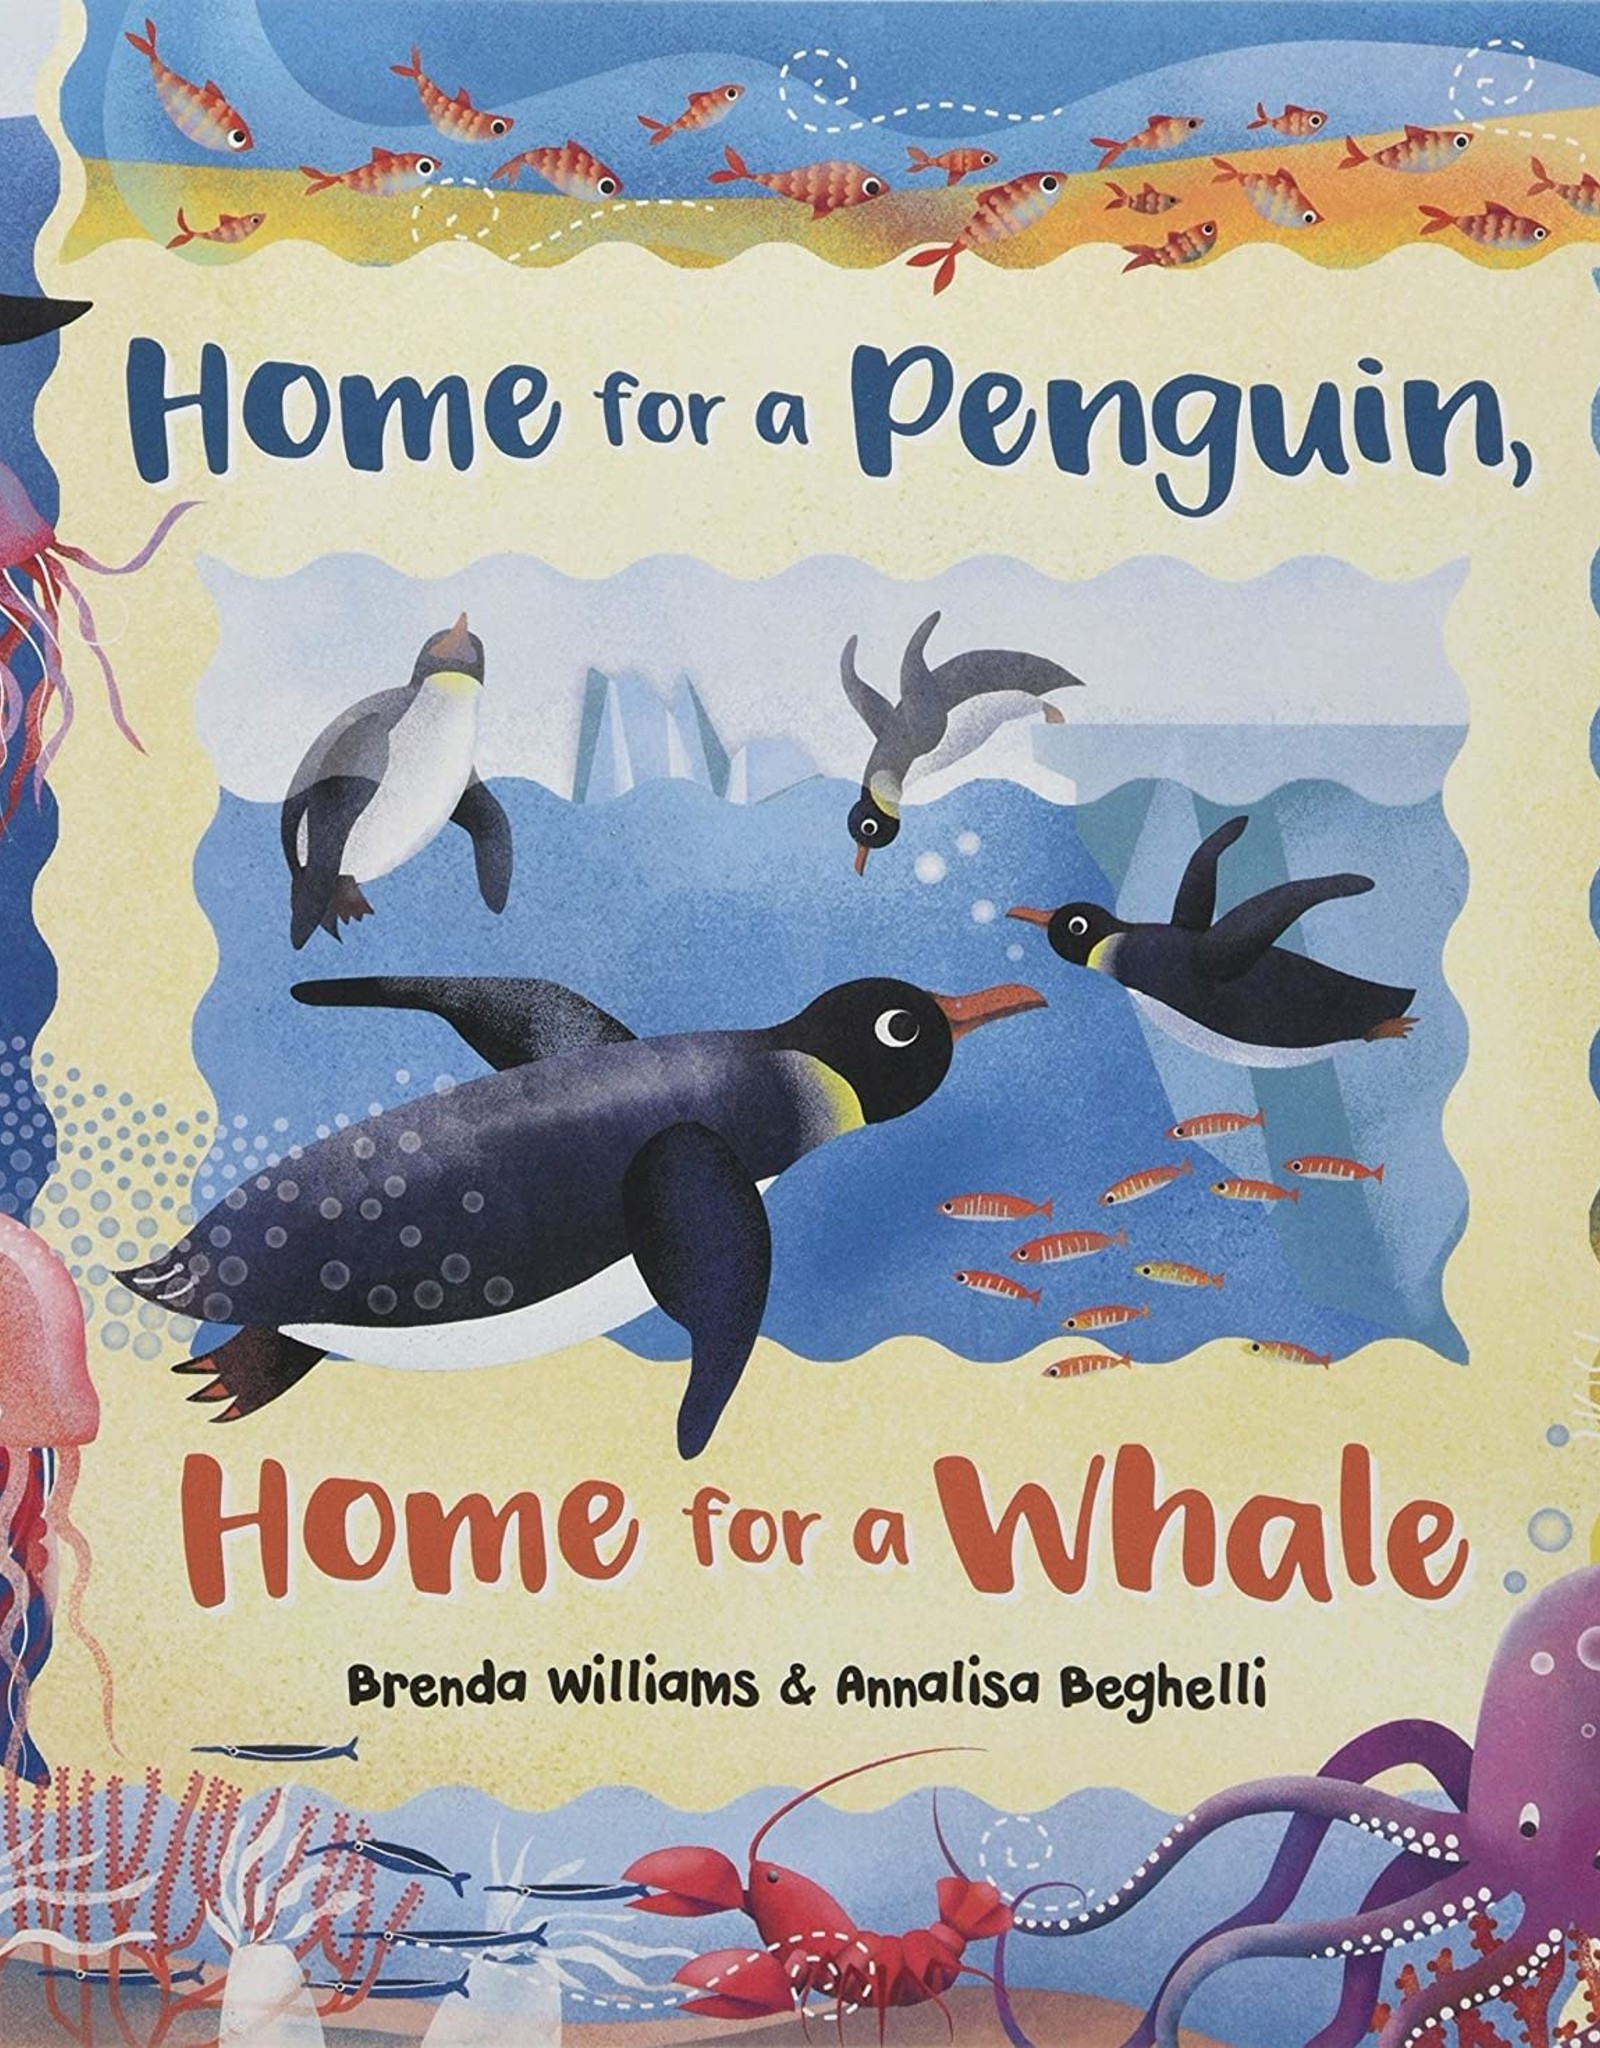 Barefoot Books Home for a Penguin, Home for a Whale